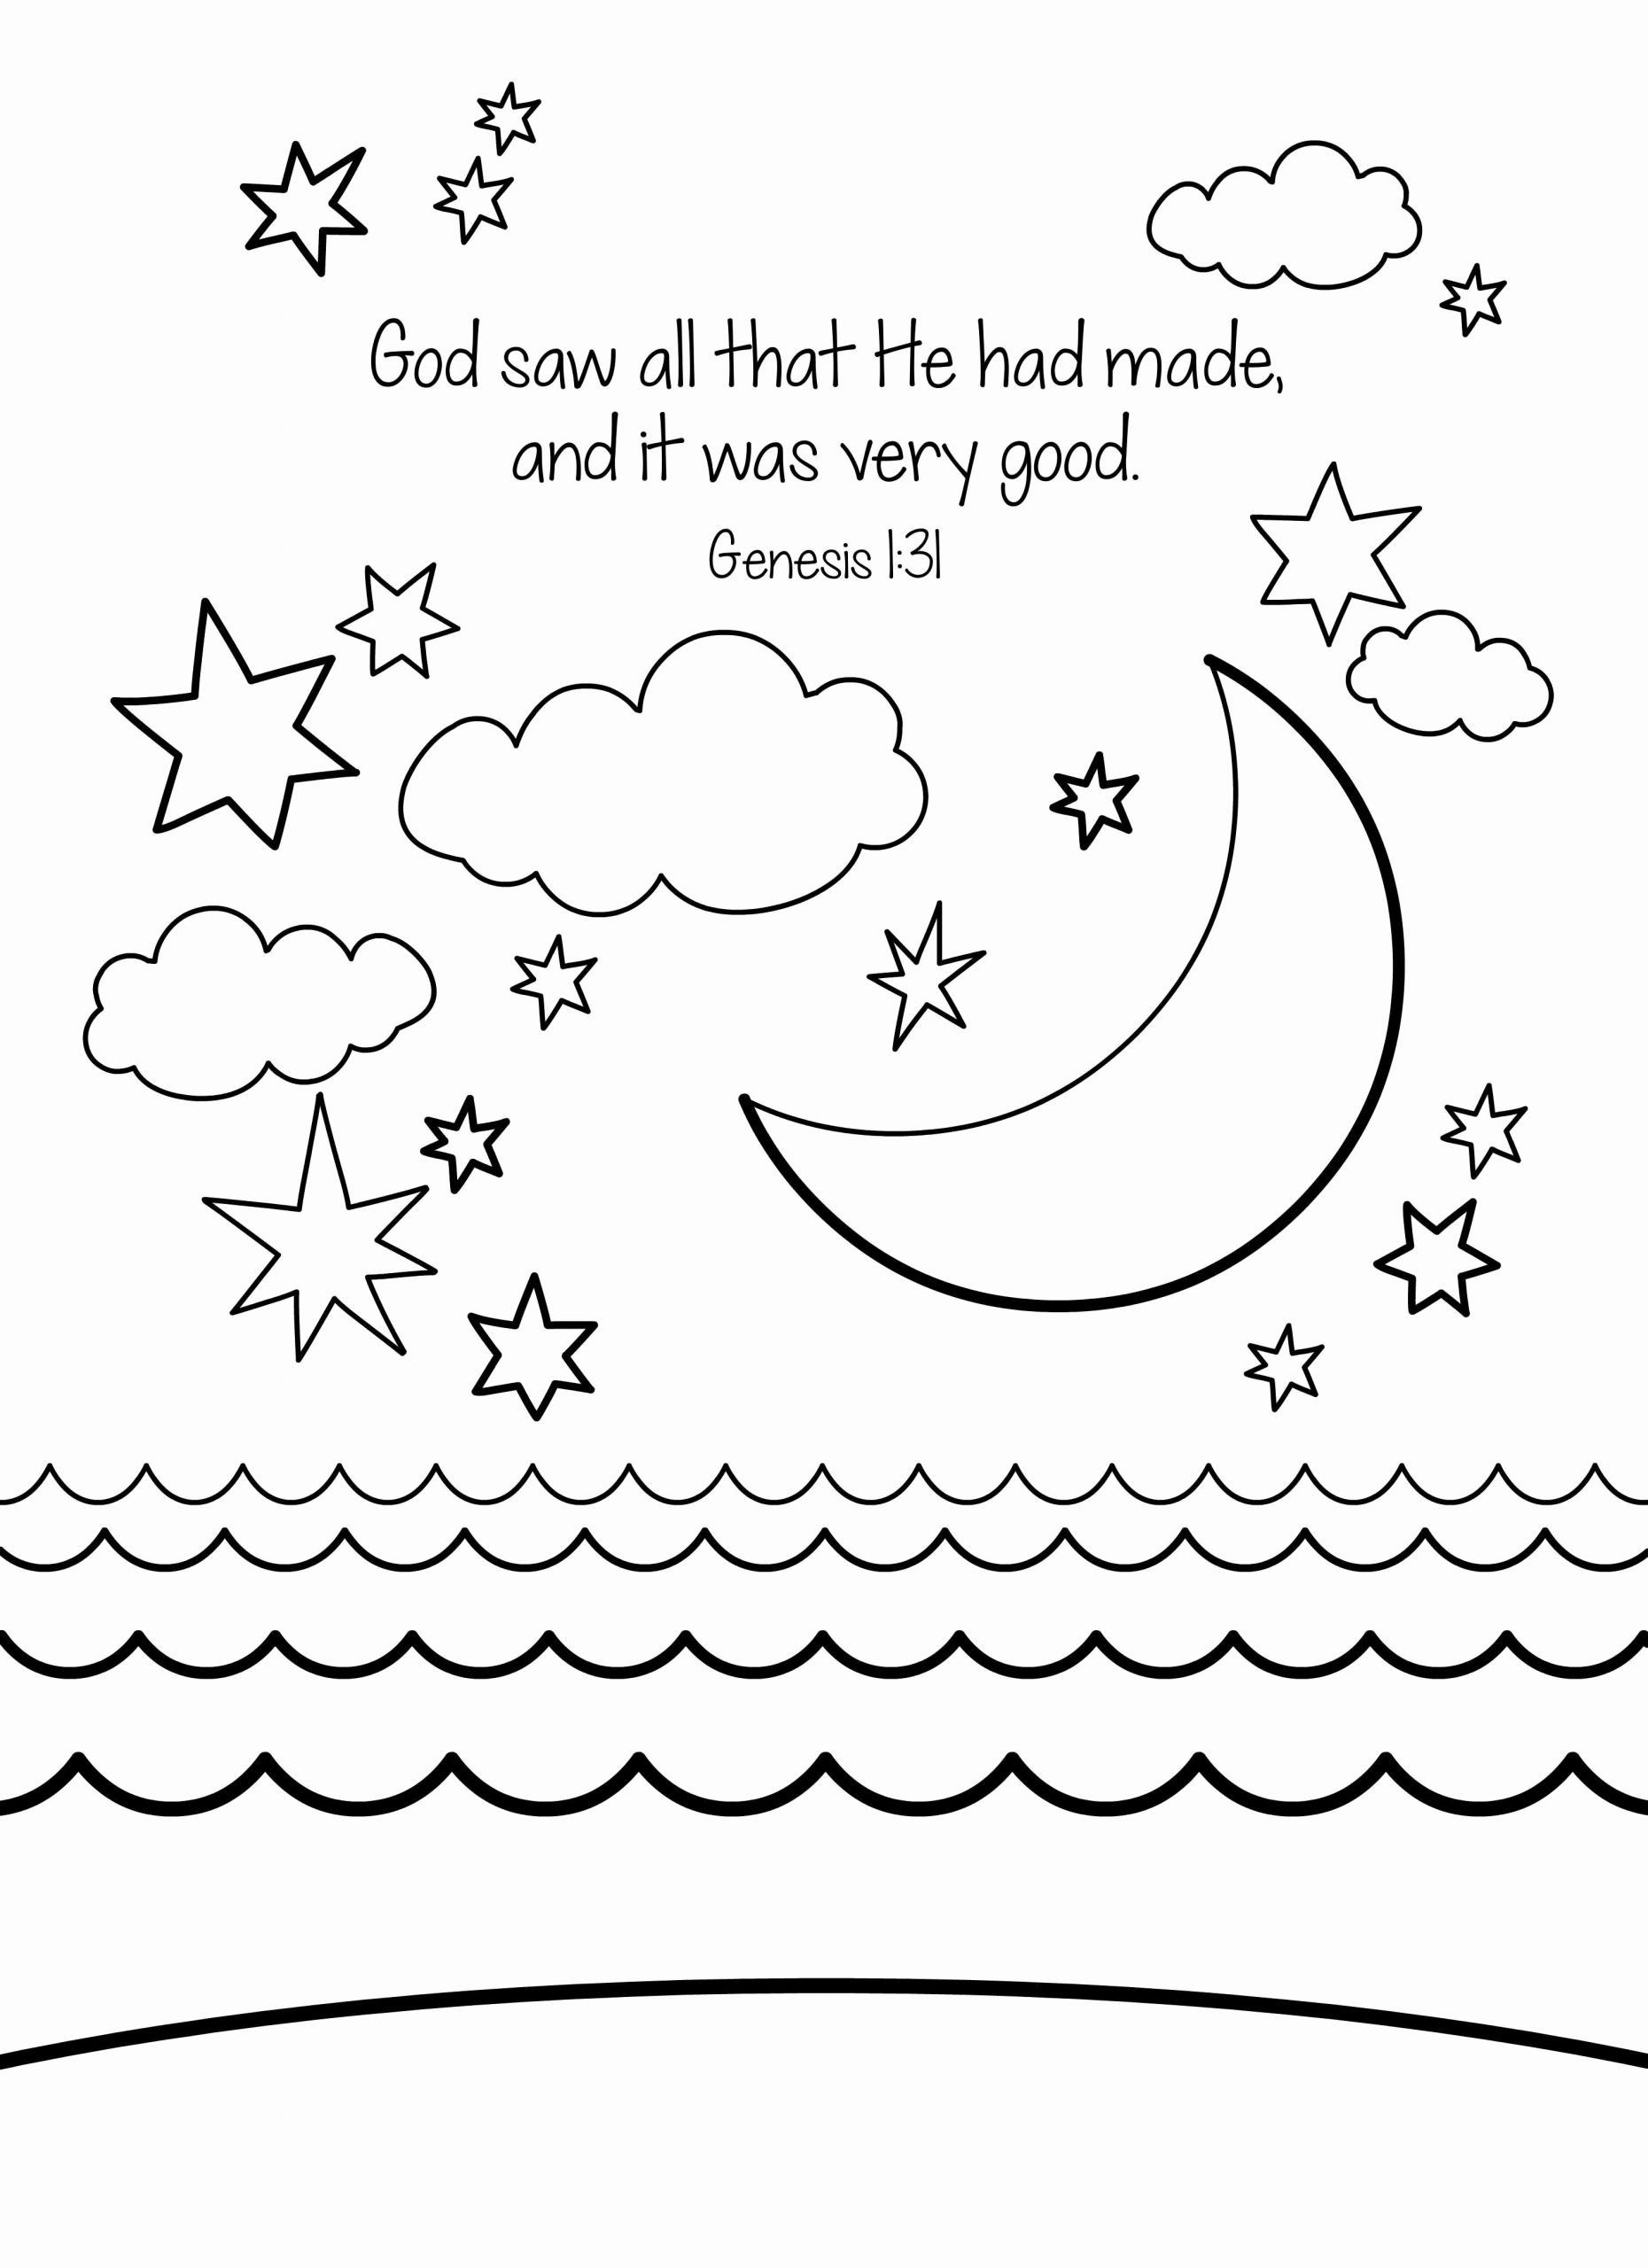 Preschool Bible Coloring Pages Luxury Creation Bible Coloring Page